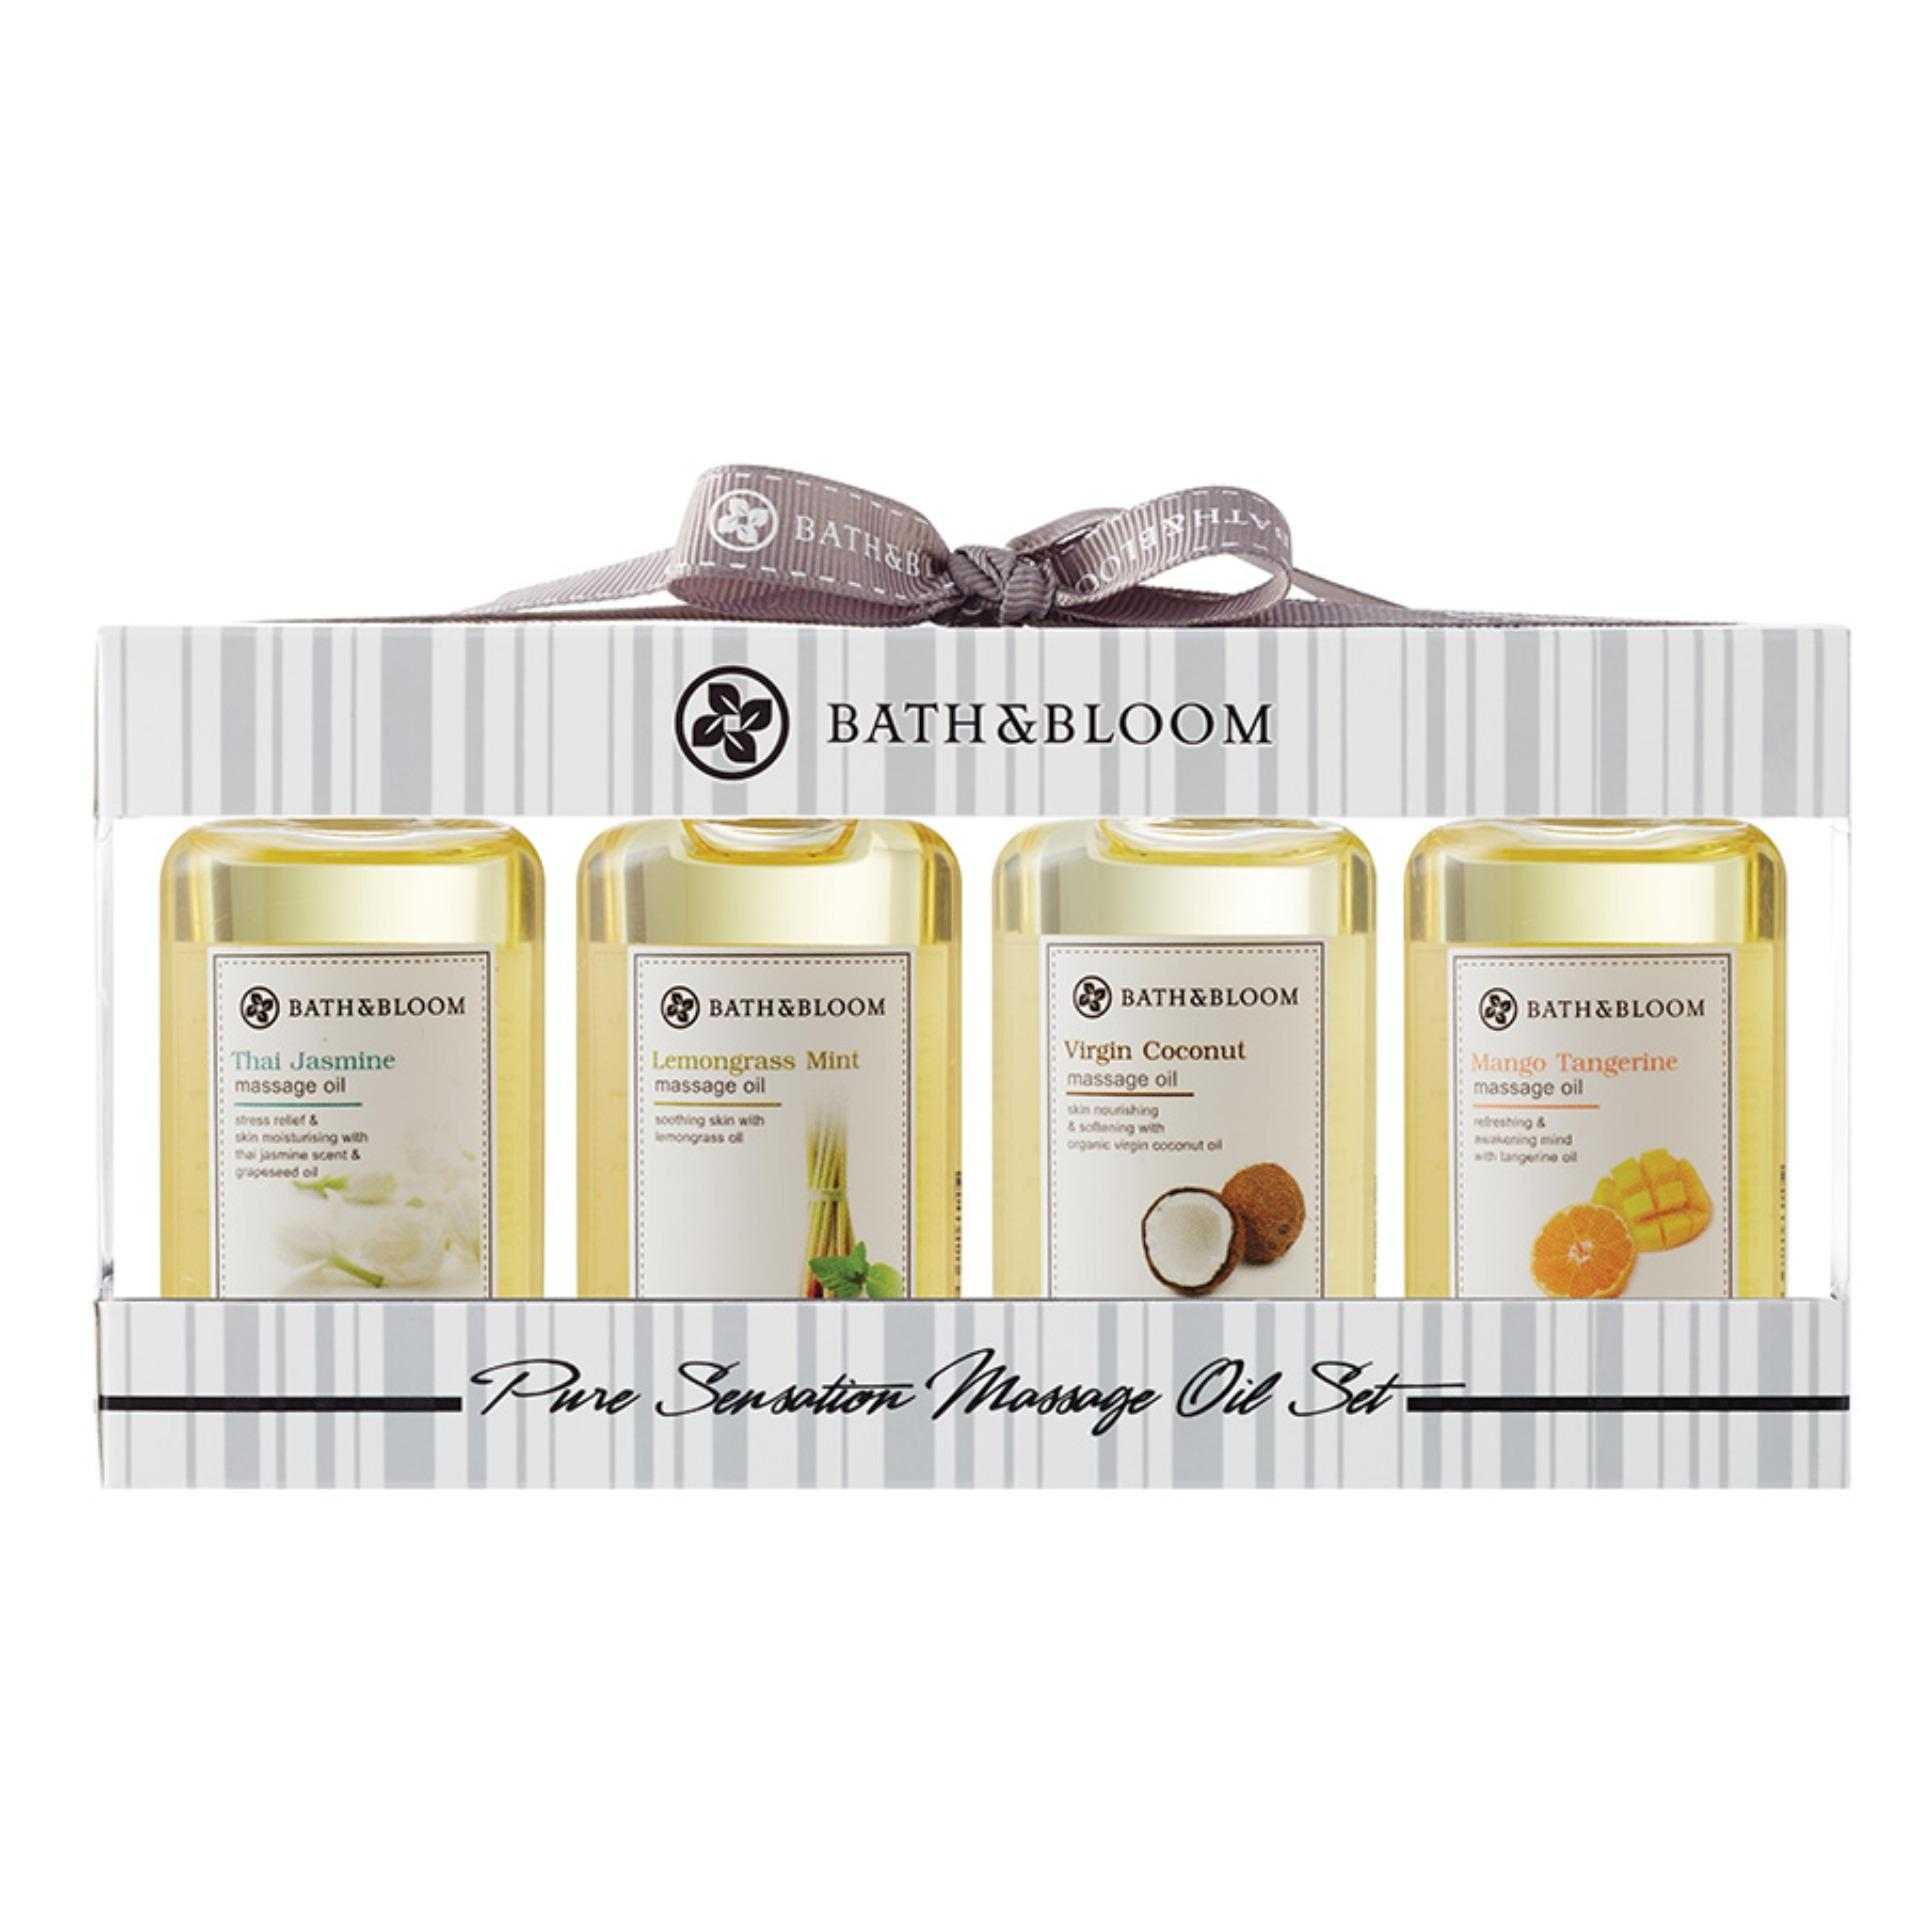 Bath And Bloom Pure Sensation Massage Oil Set Free Shipping